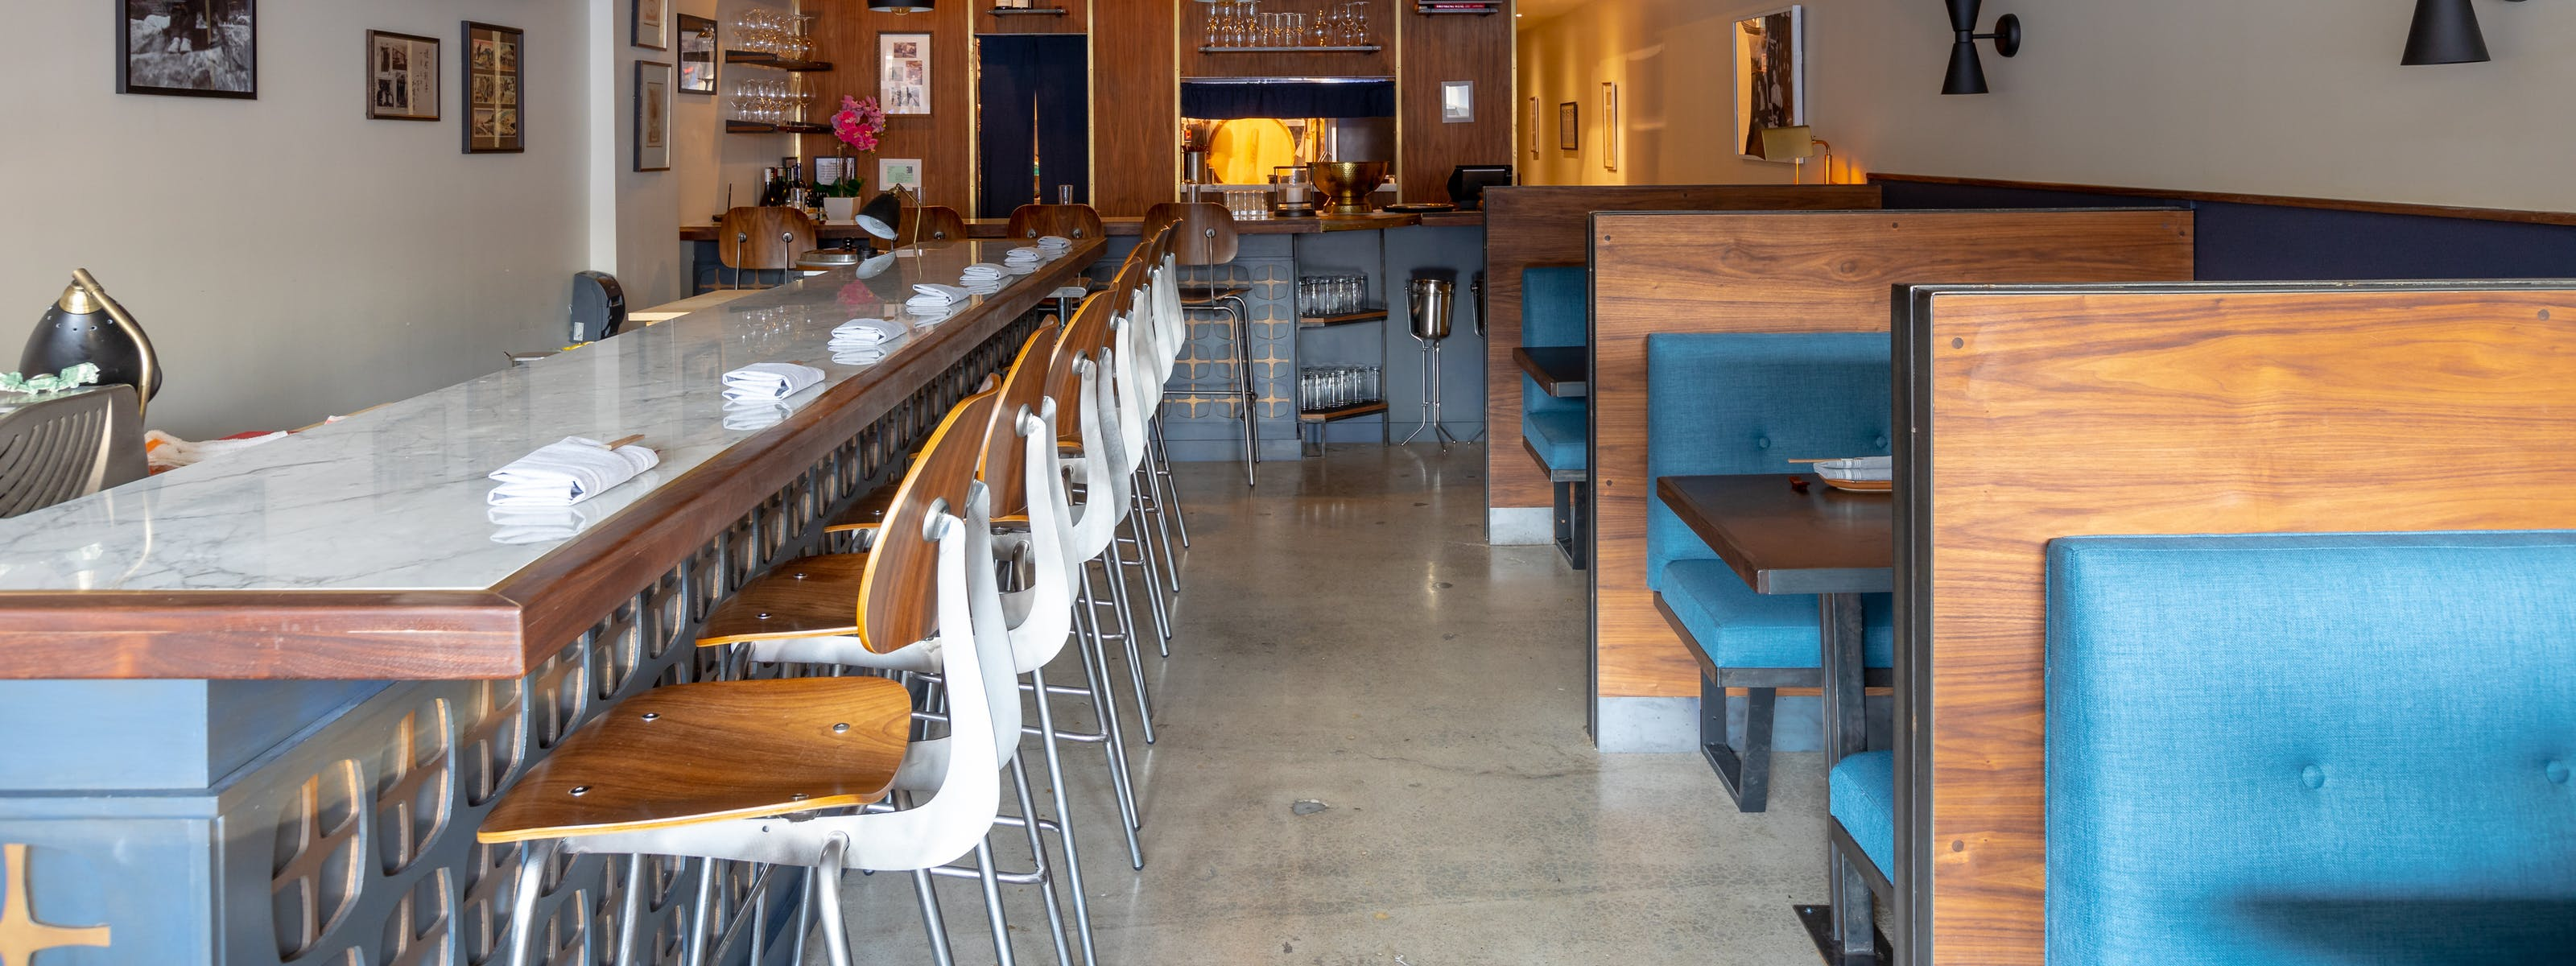 The Best Date Night Restaurants In Los Angeles - Los Angeles - The Infatuation